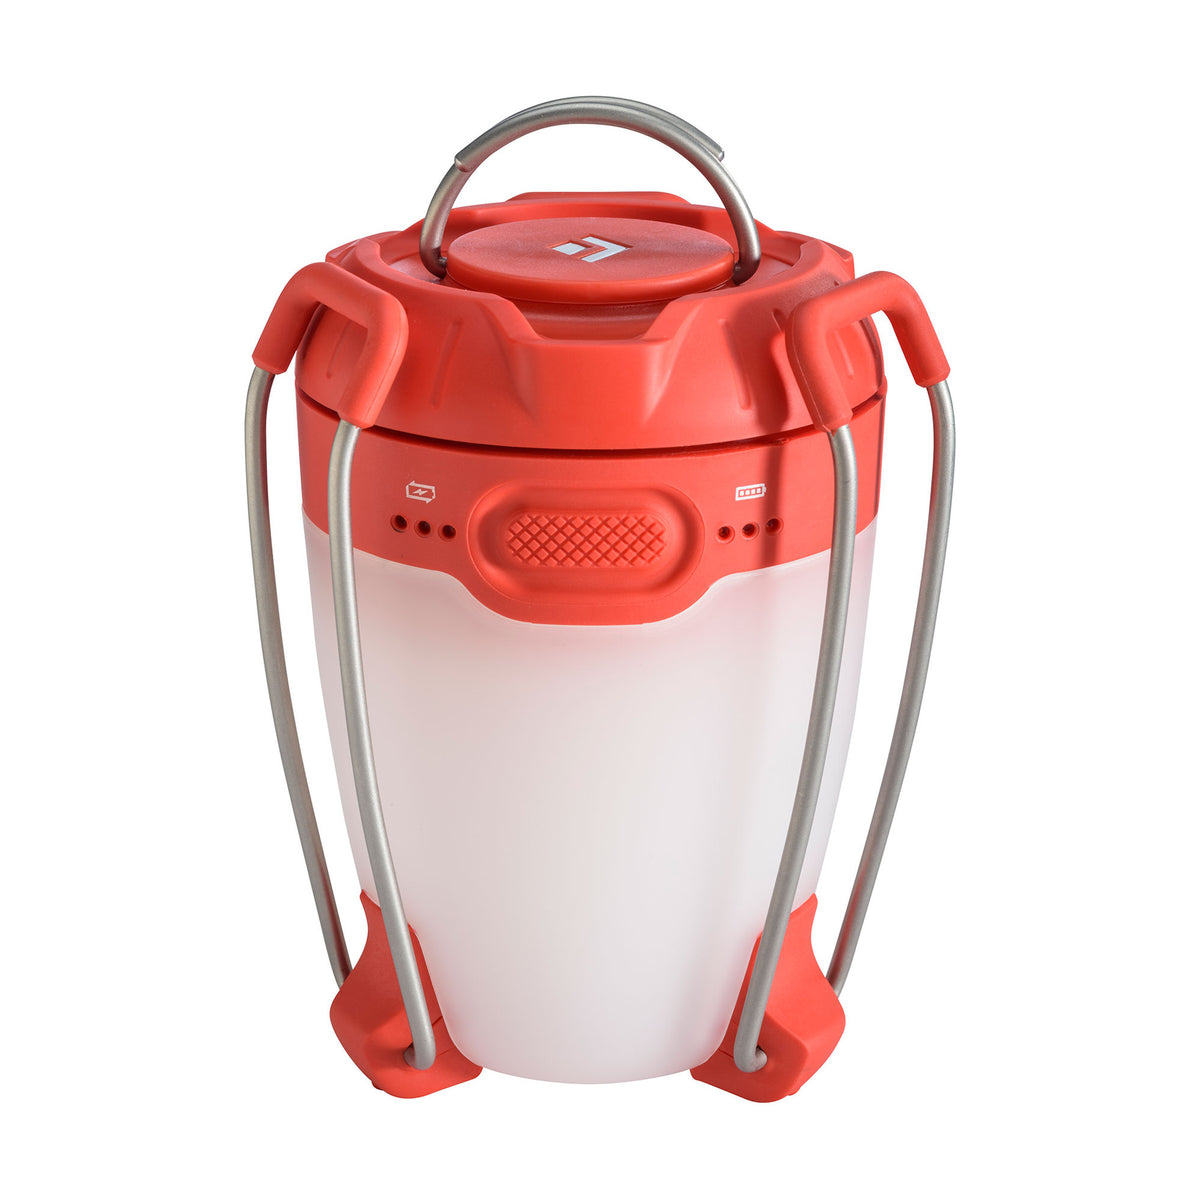 Black Diamond Apollo camping lantern, shown with legs folded up for storing